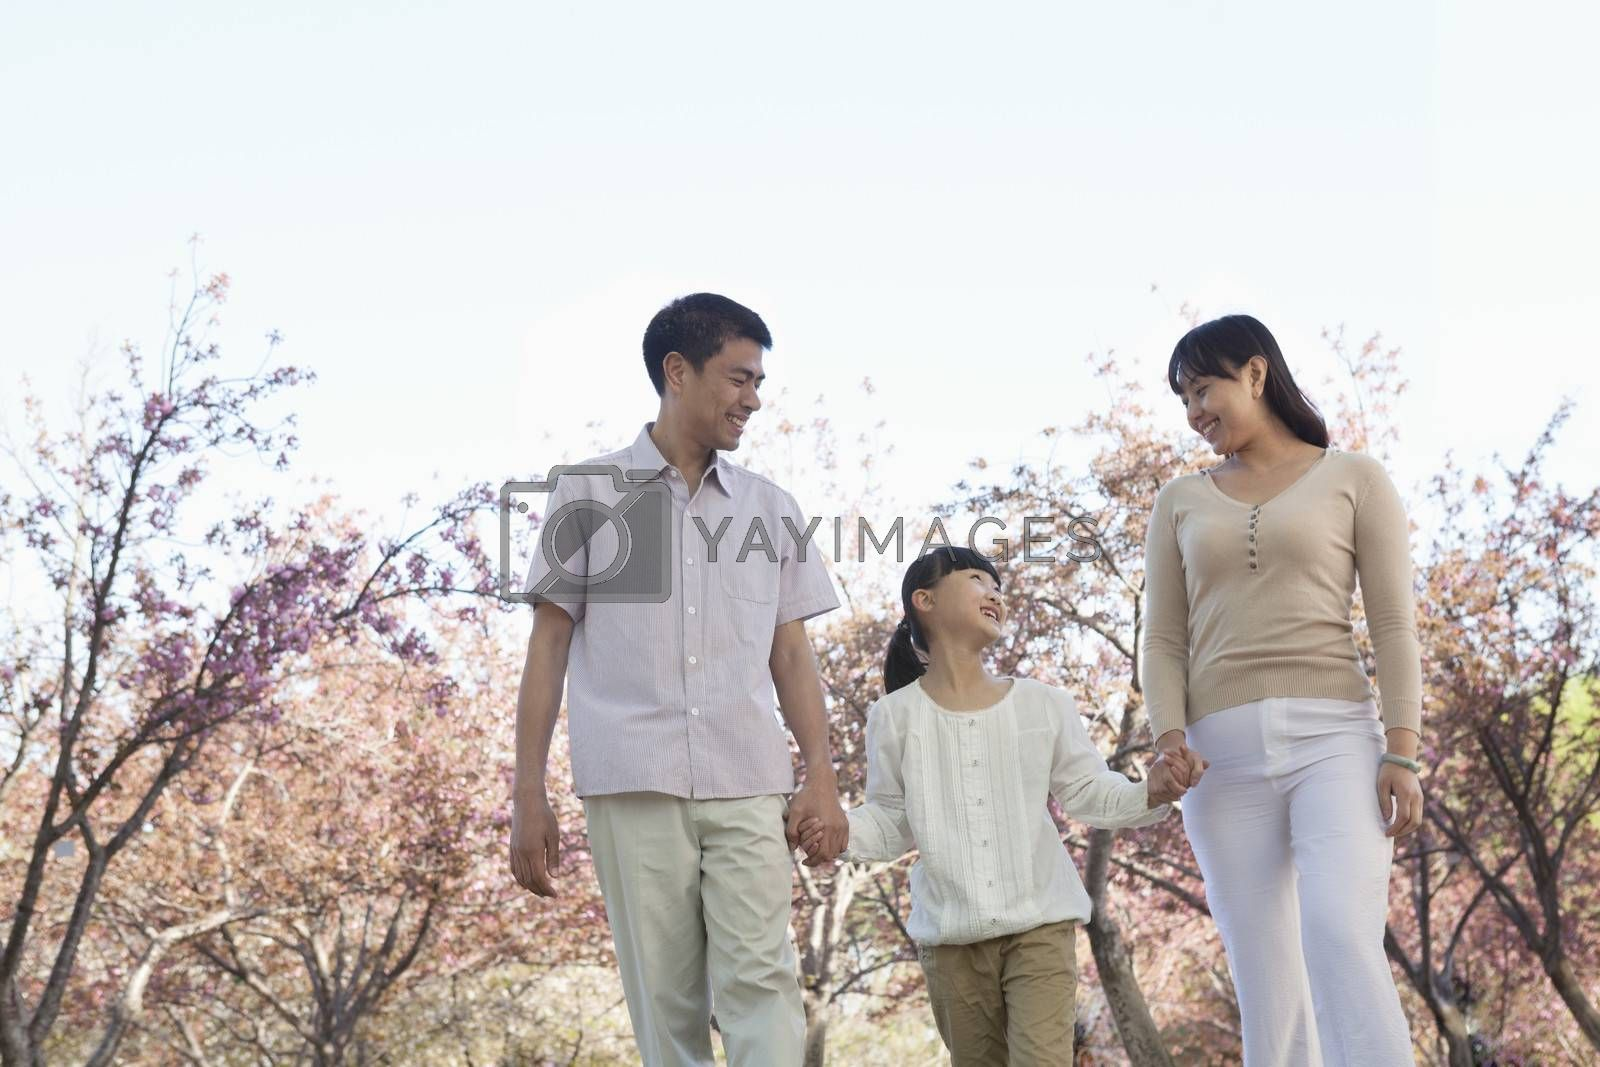 Happy family holding hands and taking a walk amongst the cherry trees in a park in springtime, Beijing